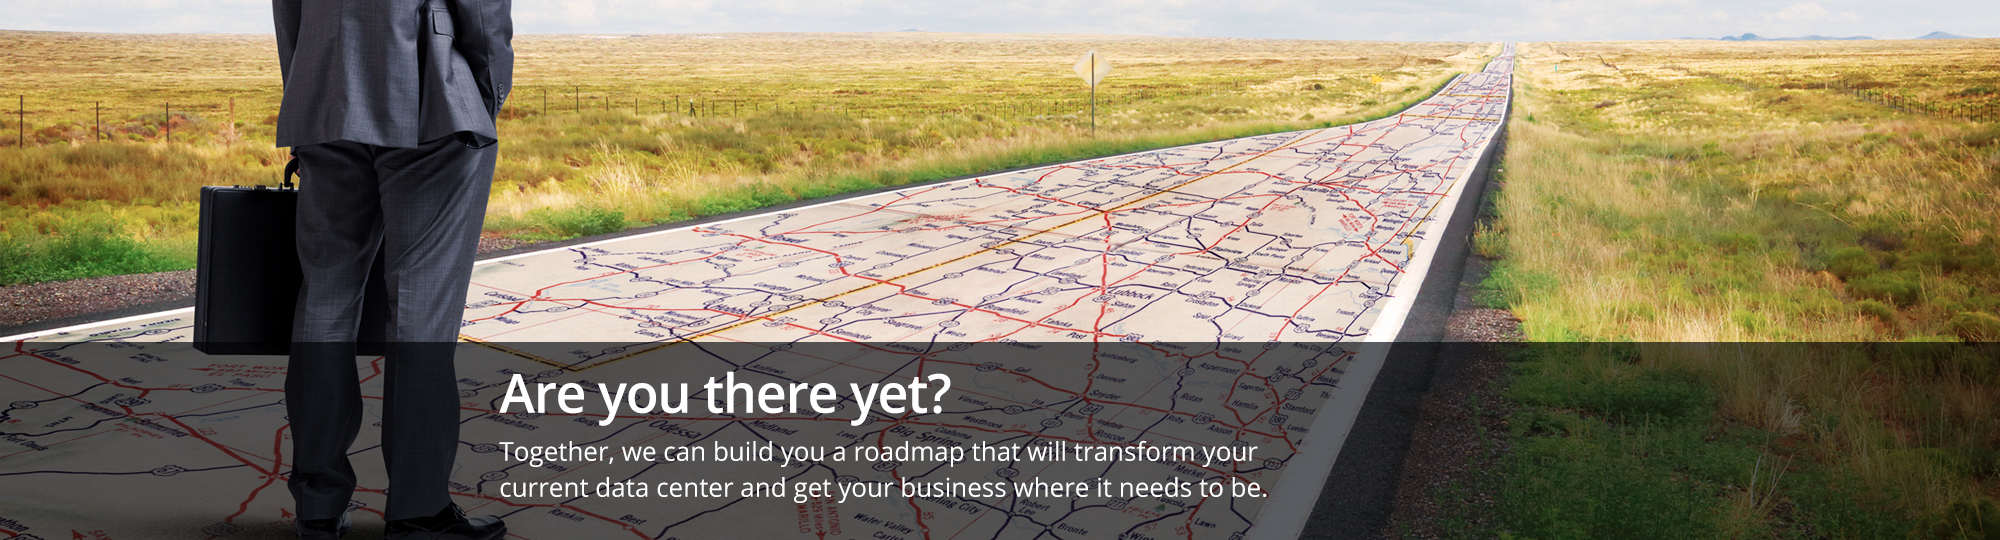 Zones Data Center: Together, we can build you a roadmap that will transform your current data center and get your business where it needs to be.